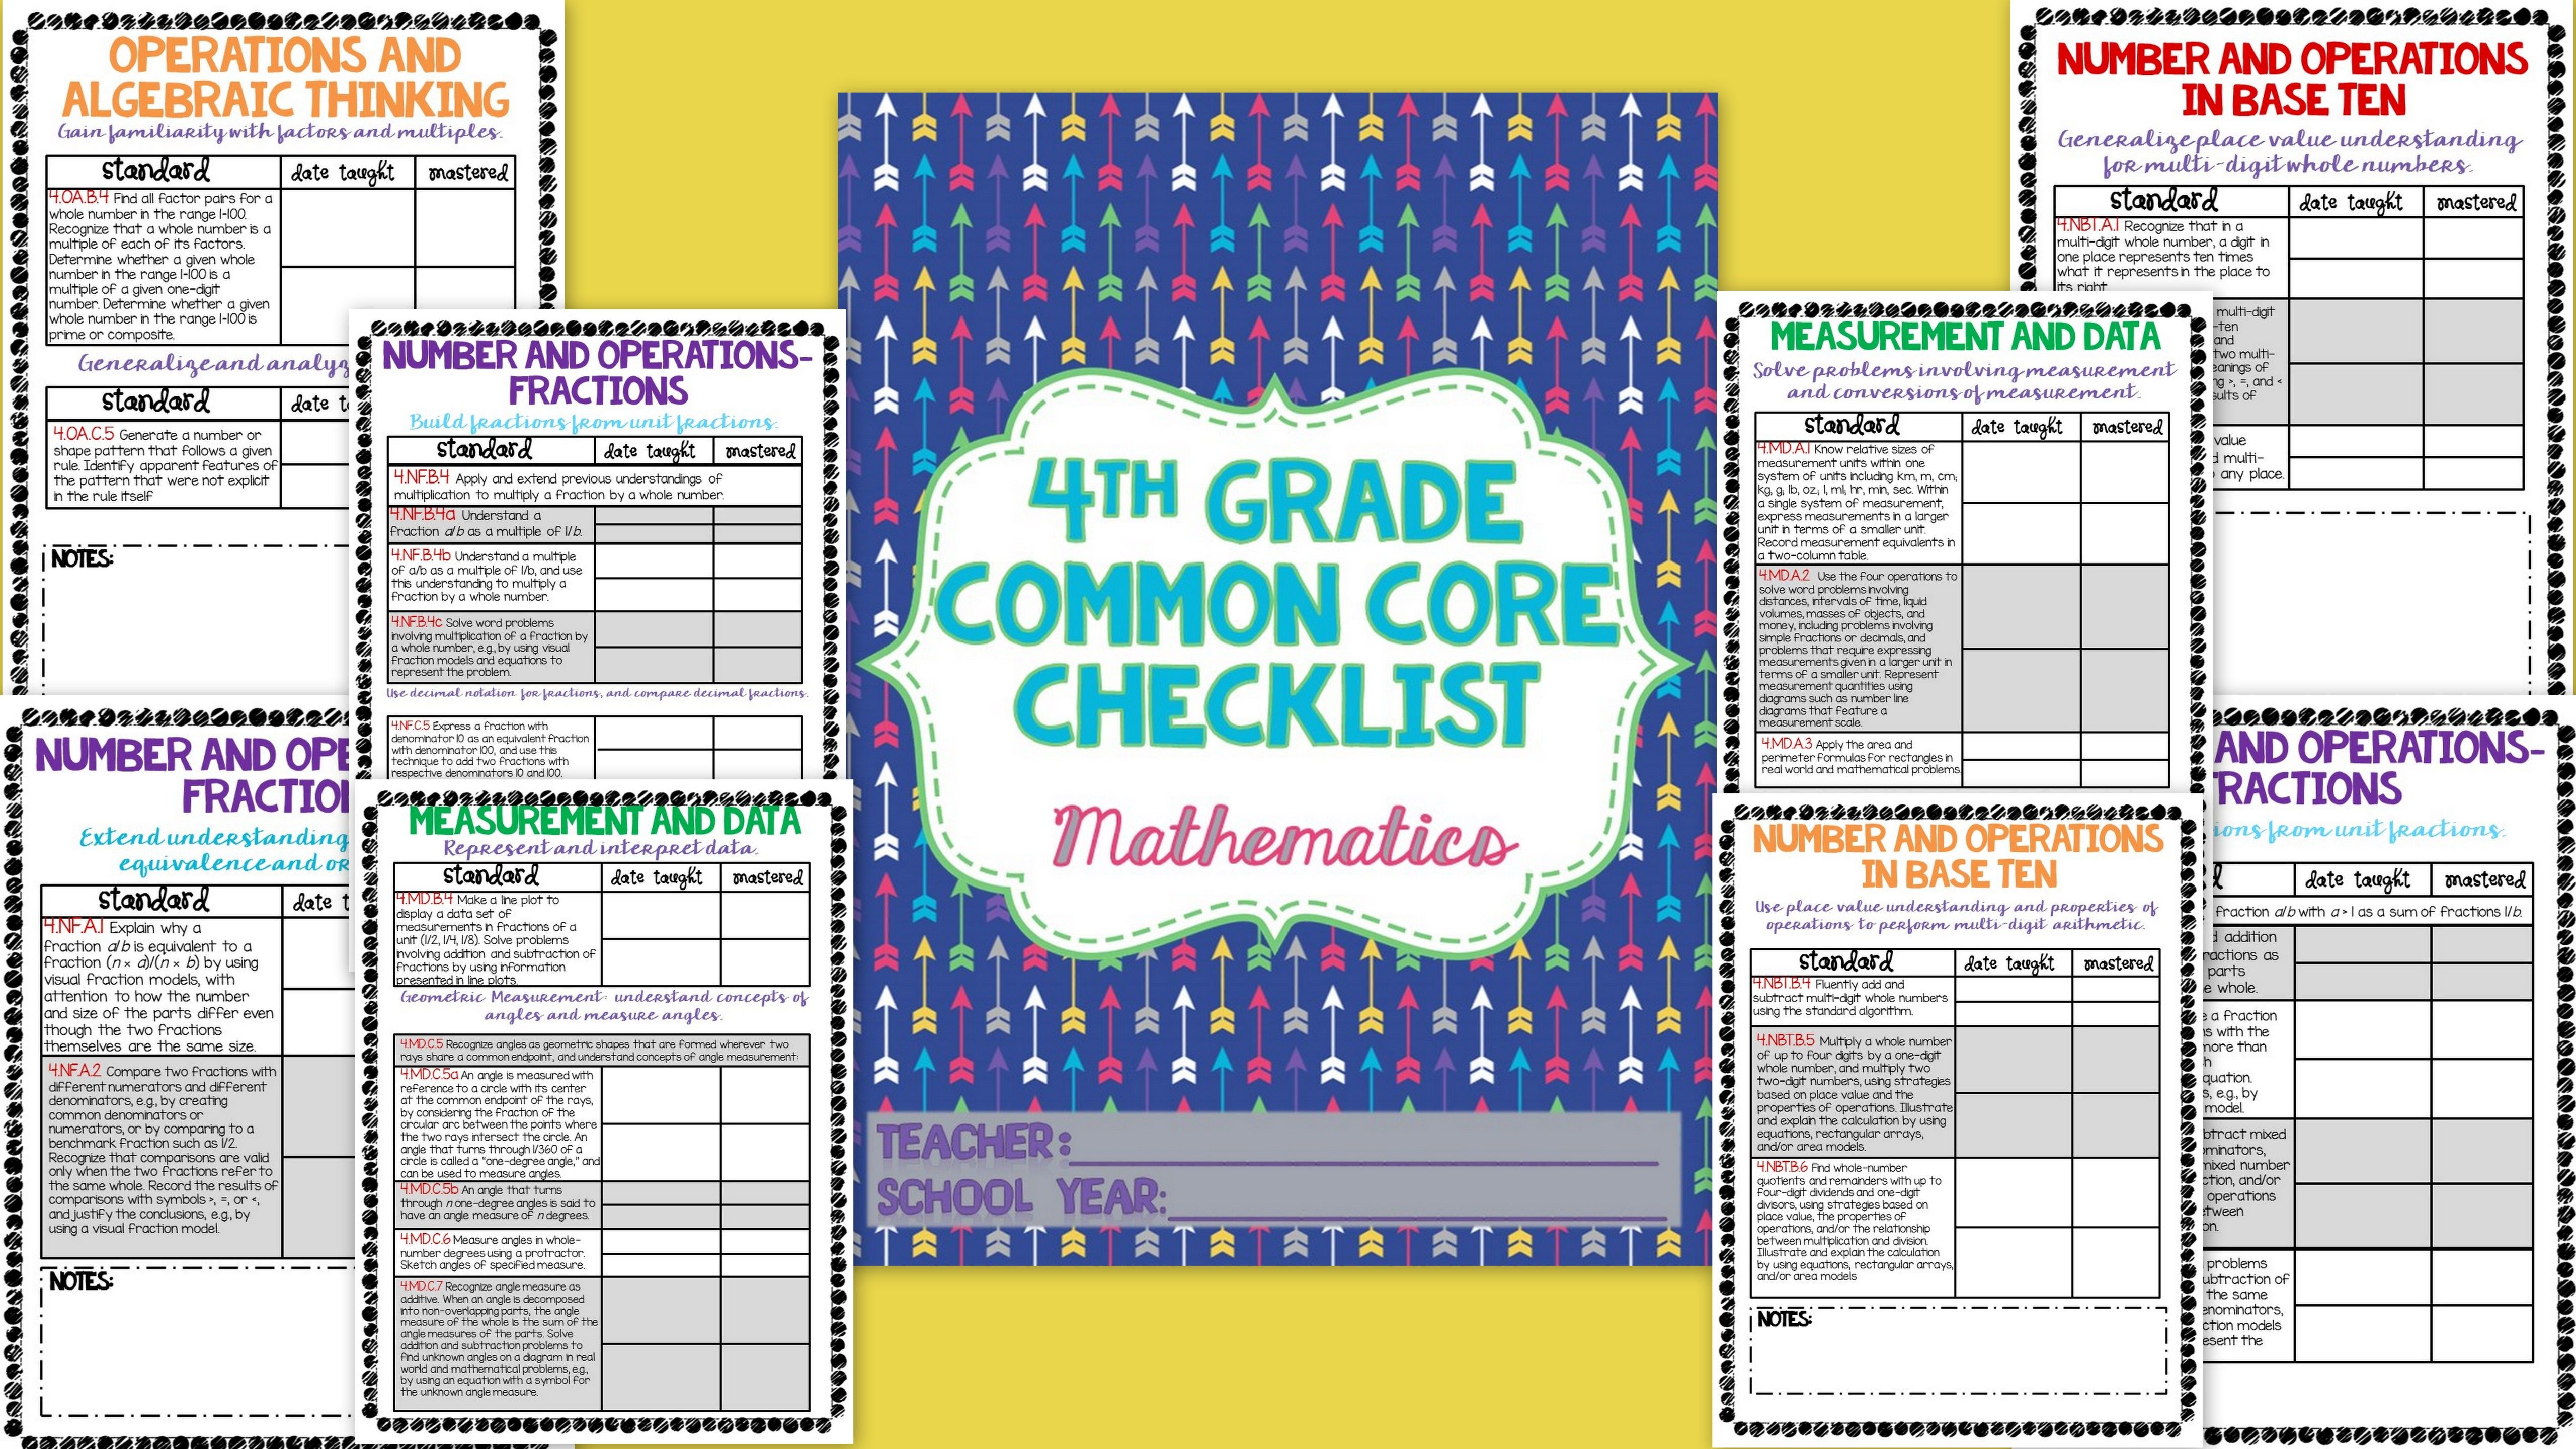 4th grade math common core checklist! Easily keep track of which standards you have taught and which ones that have been mastered! 4th grade math